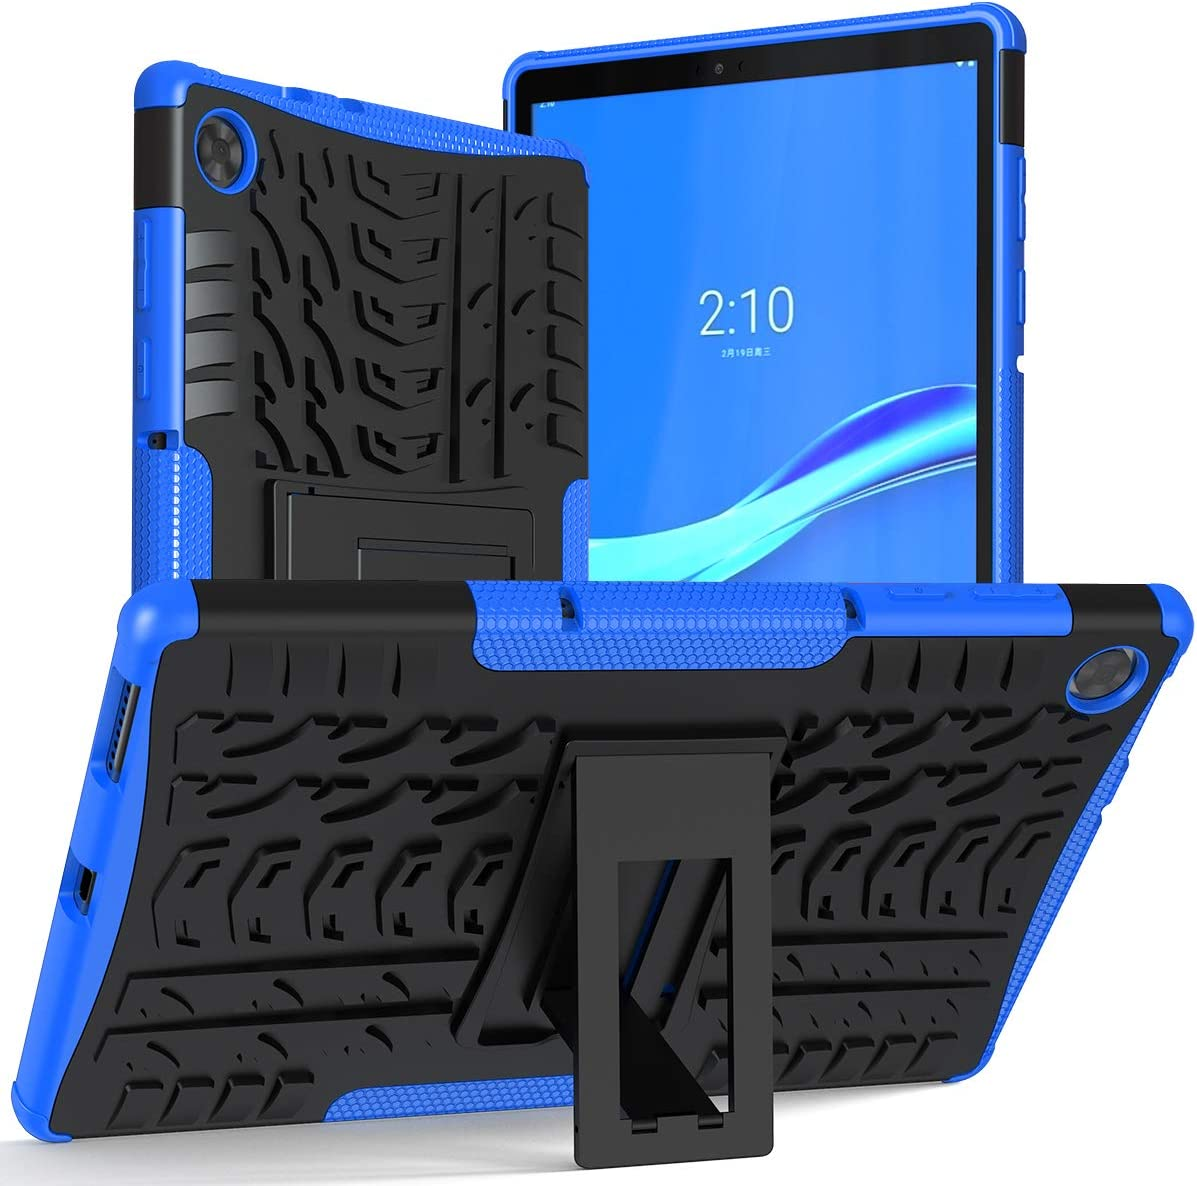 ROISKIN Dual Layer Armor Protective Case Cover for Lenovo Tab M10 HD 2nd Gen Case 10.1 Inch 2020 Model TB-X306F / TB-X306X -Blue